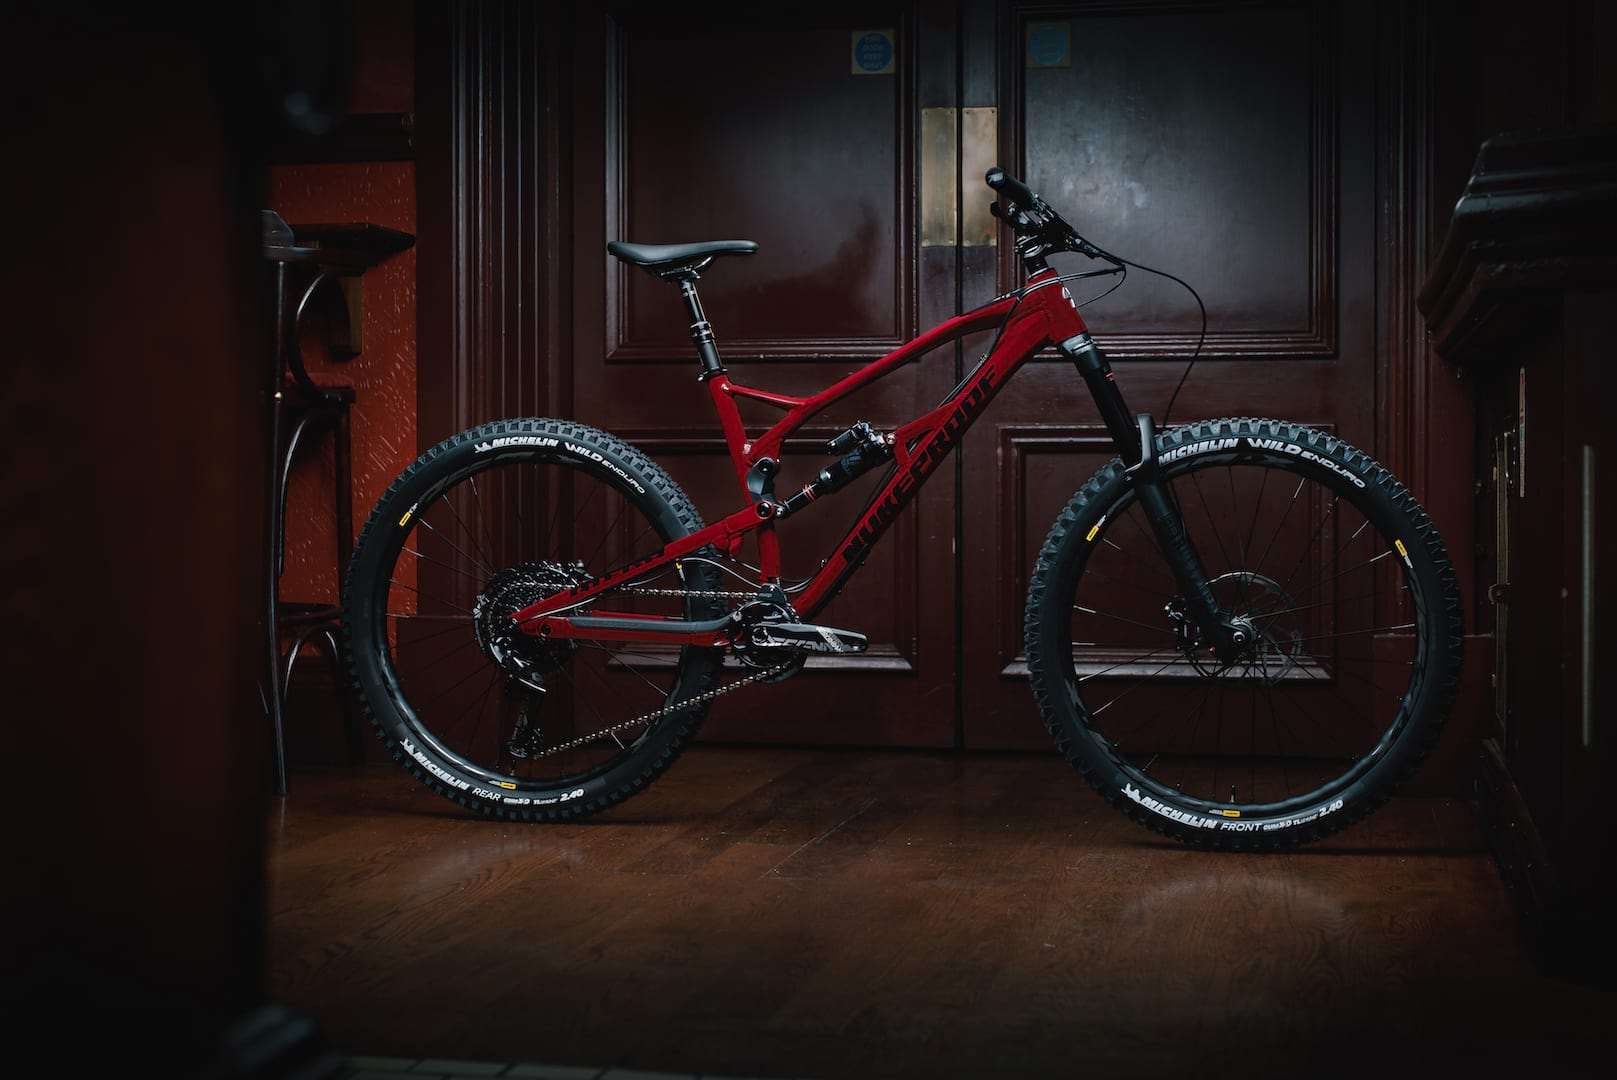 ba02d08a8 Nukeproof Dives Into 2019 With Range Update - Singletrack Magazine